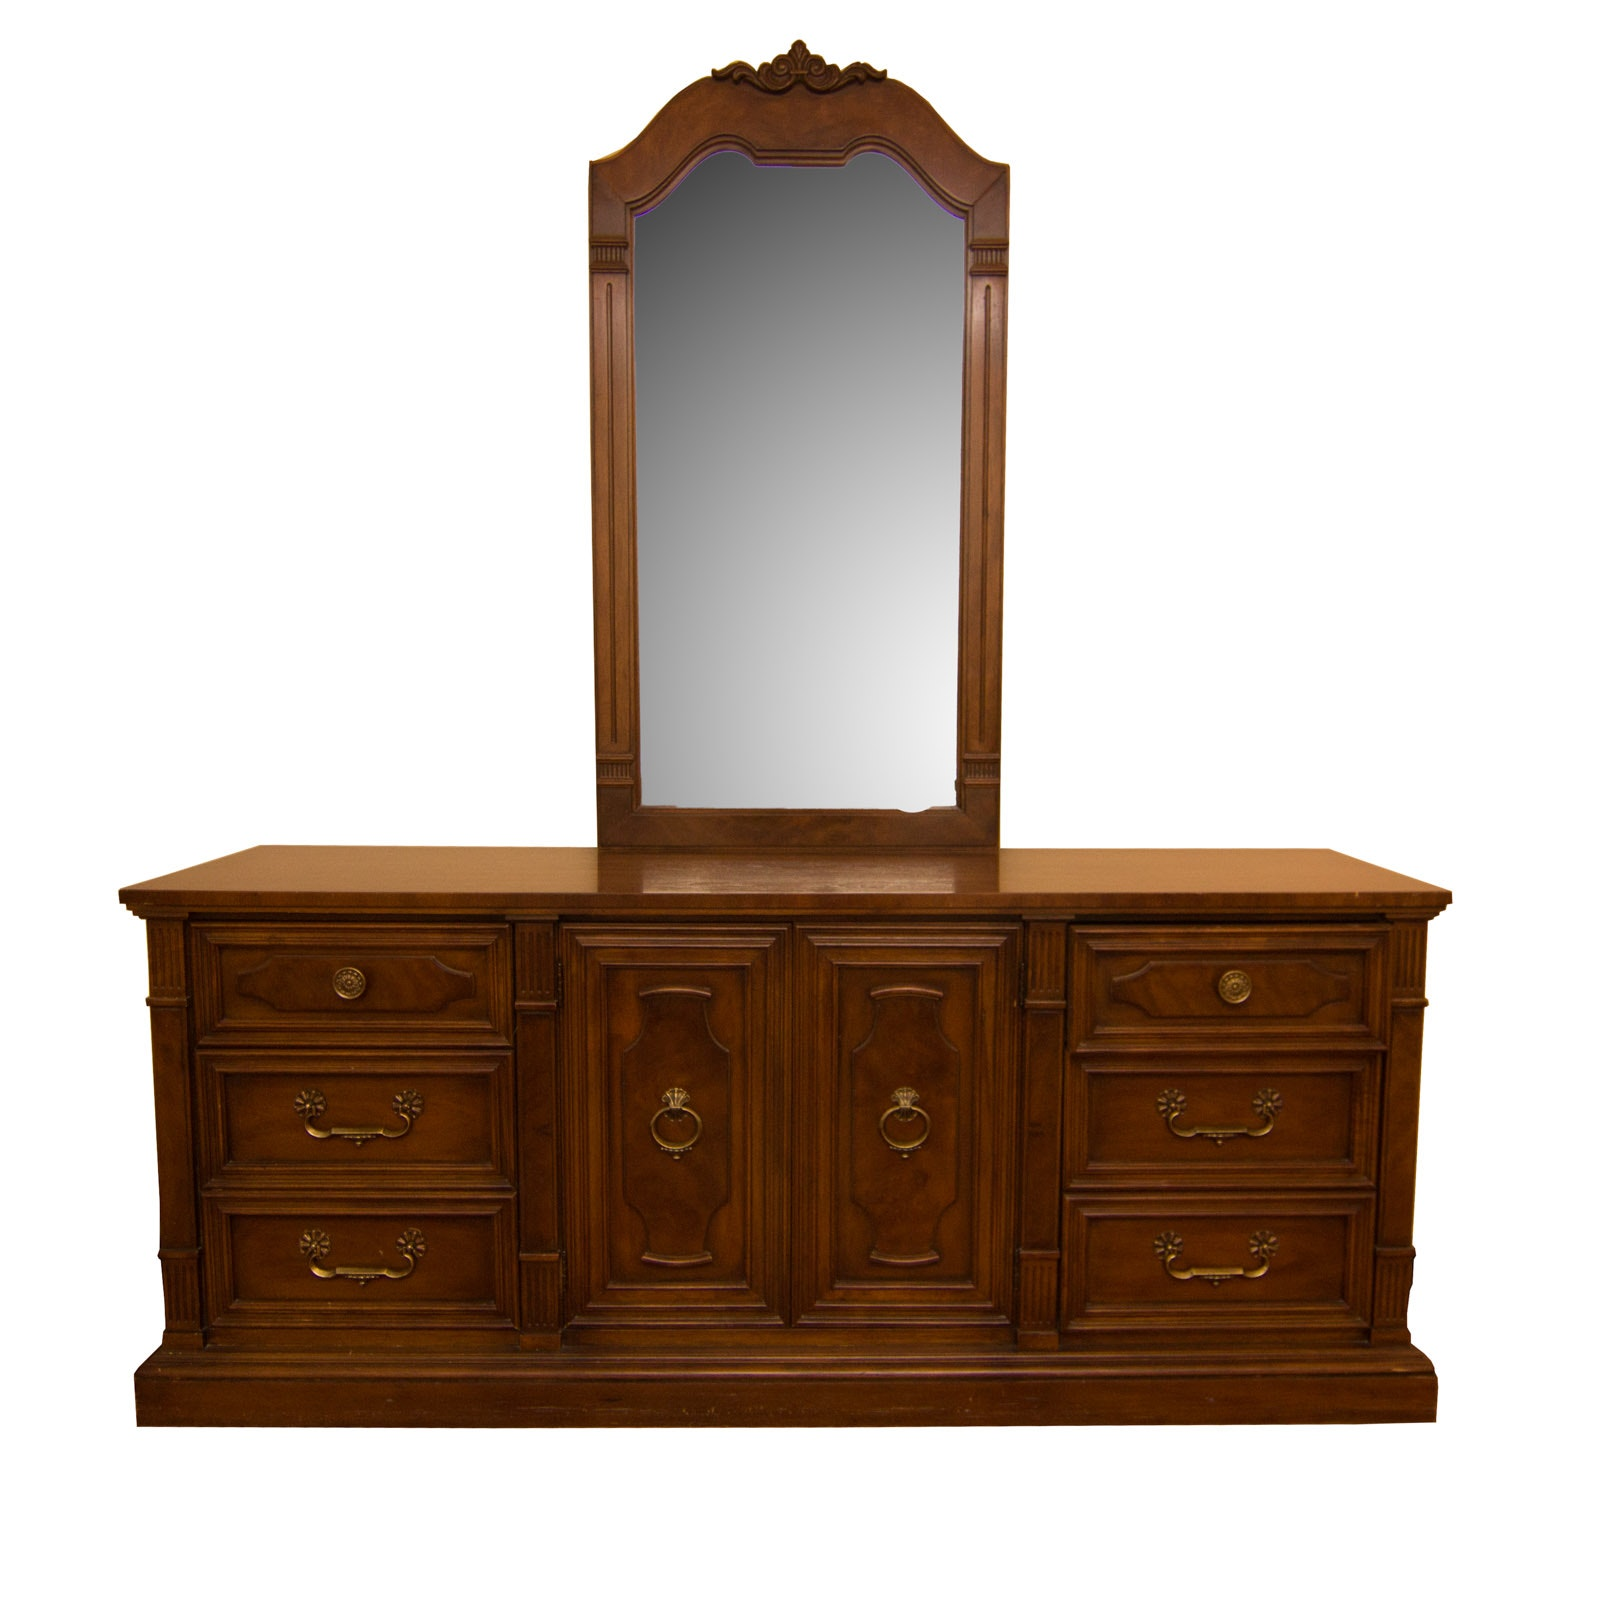 Mahogany Finished Drexel Dresser with Mirror